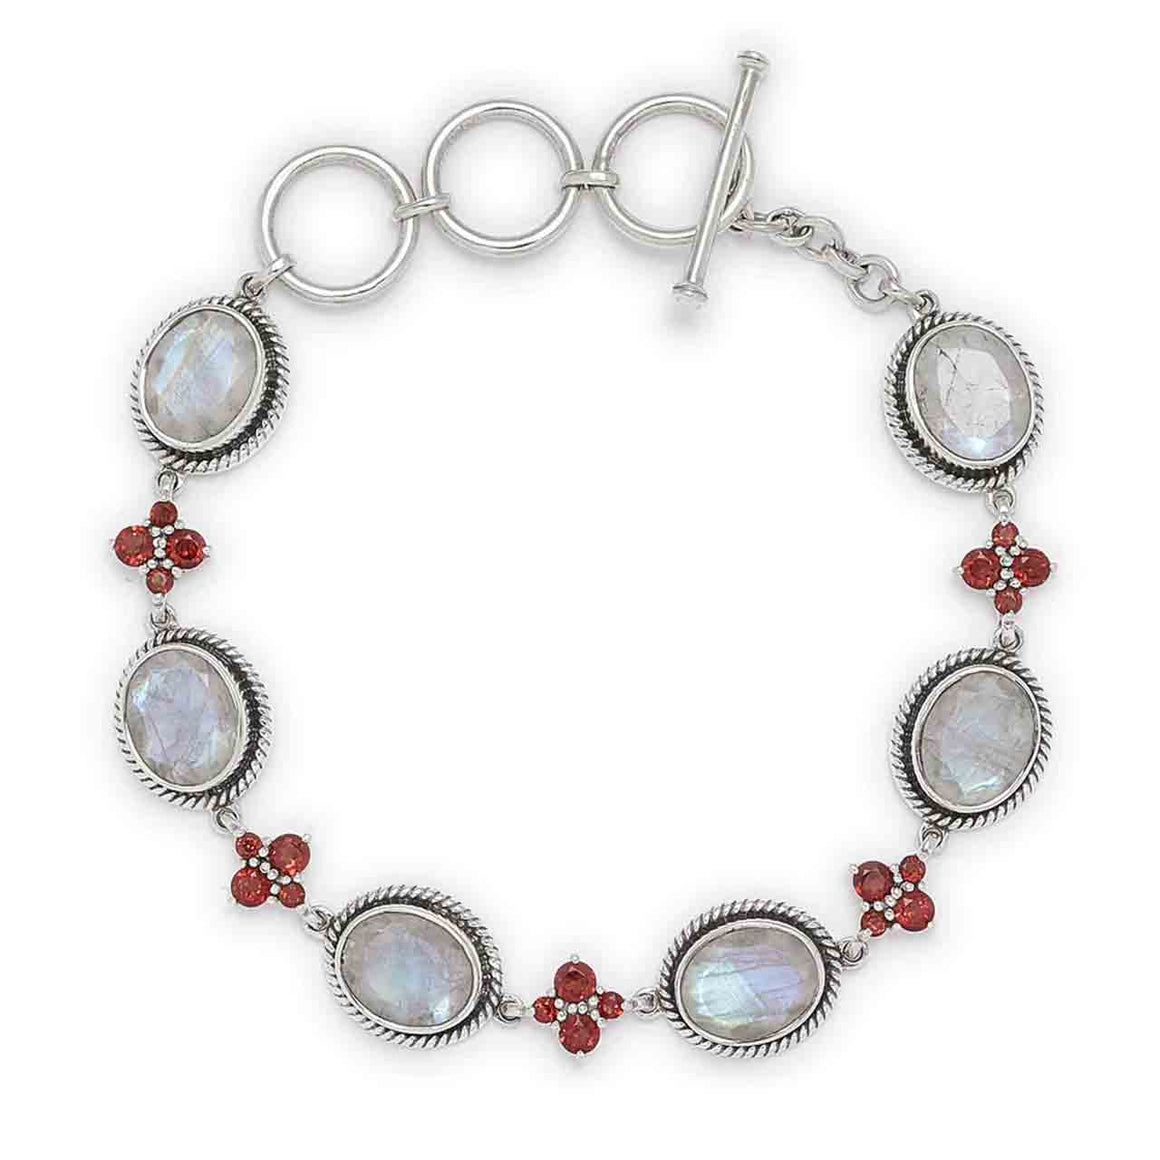 Faceted Rainbow Moonstone & Garnet Link Bracelet